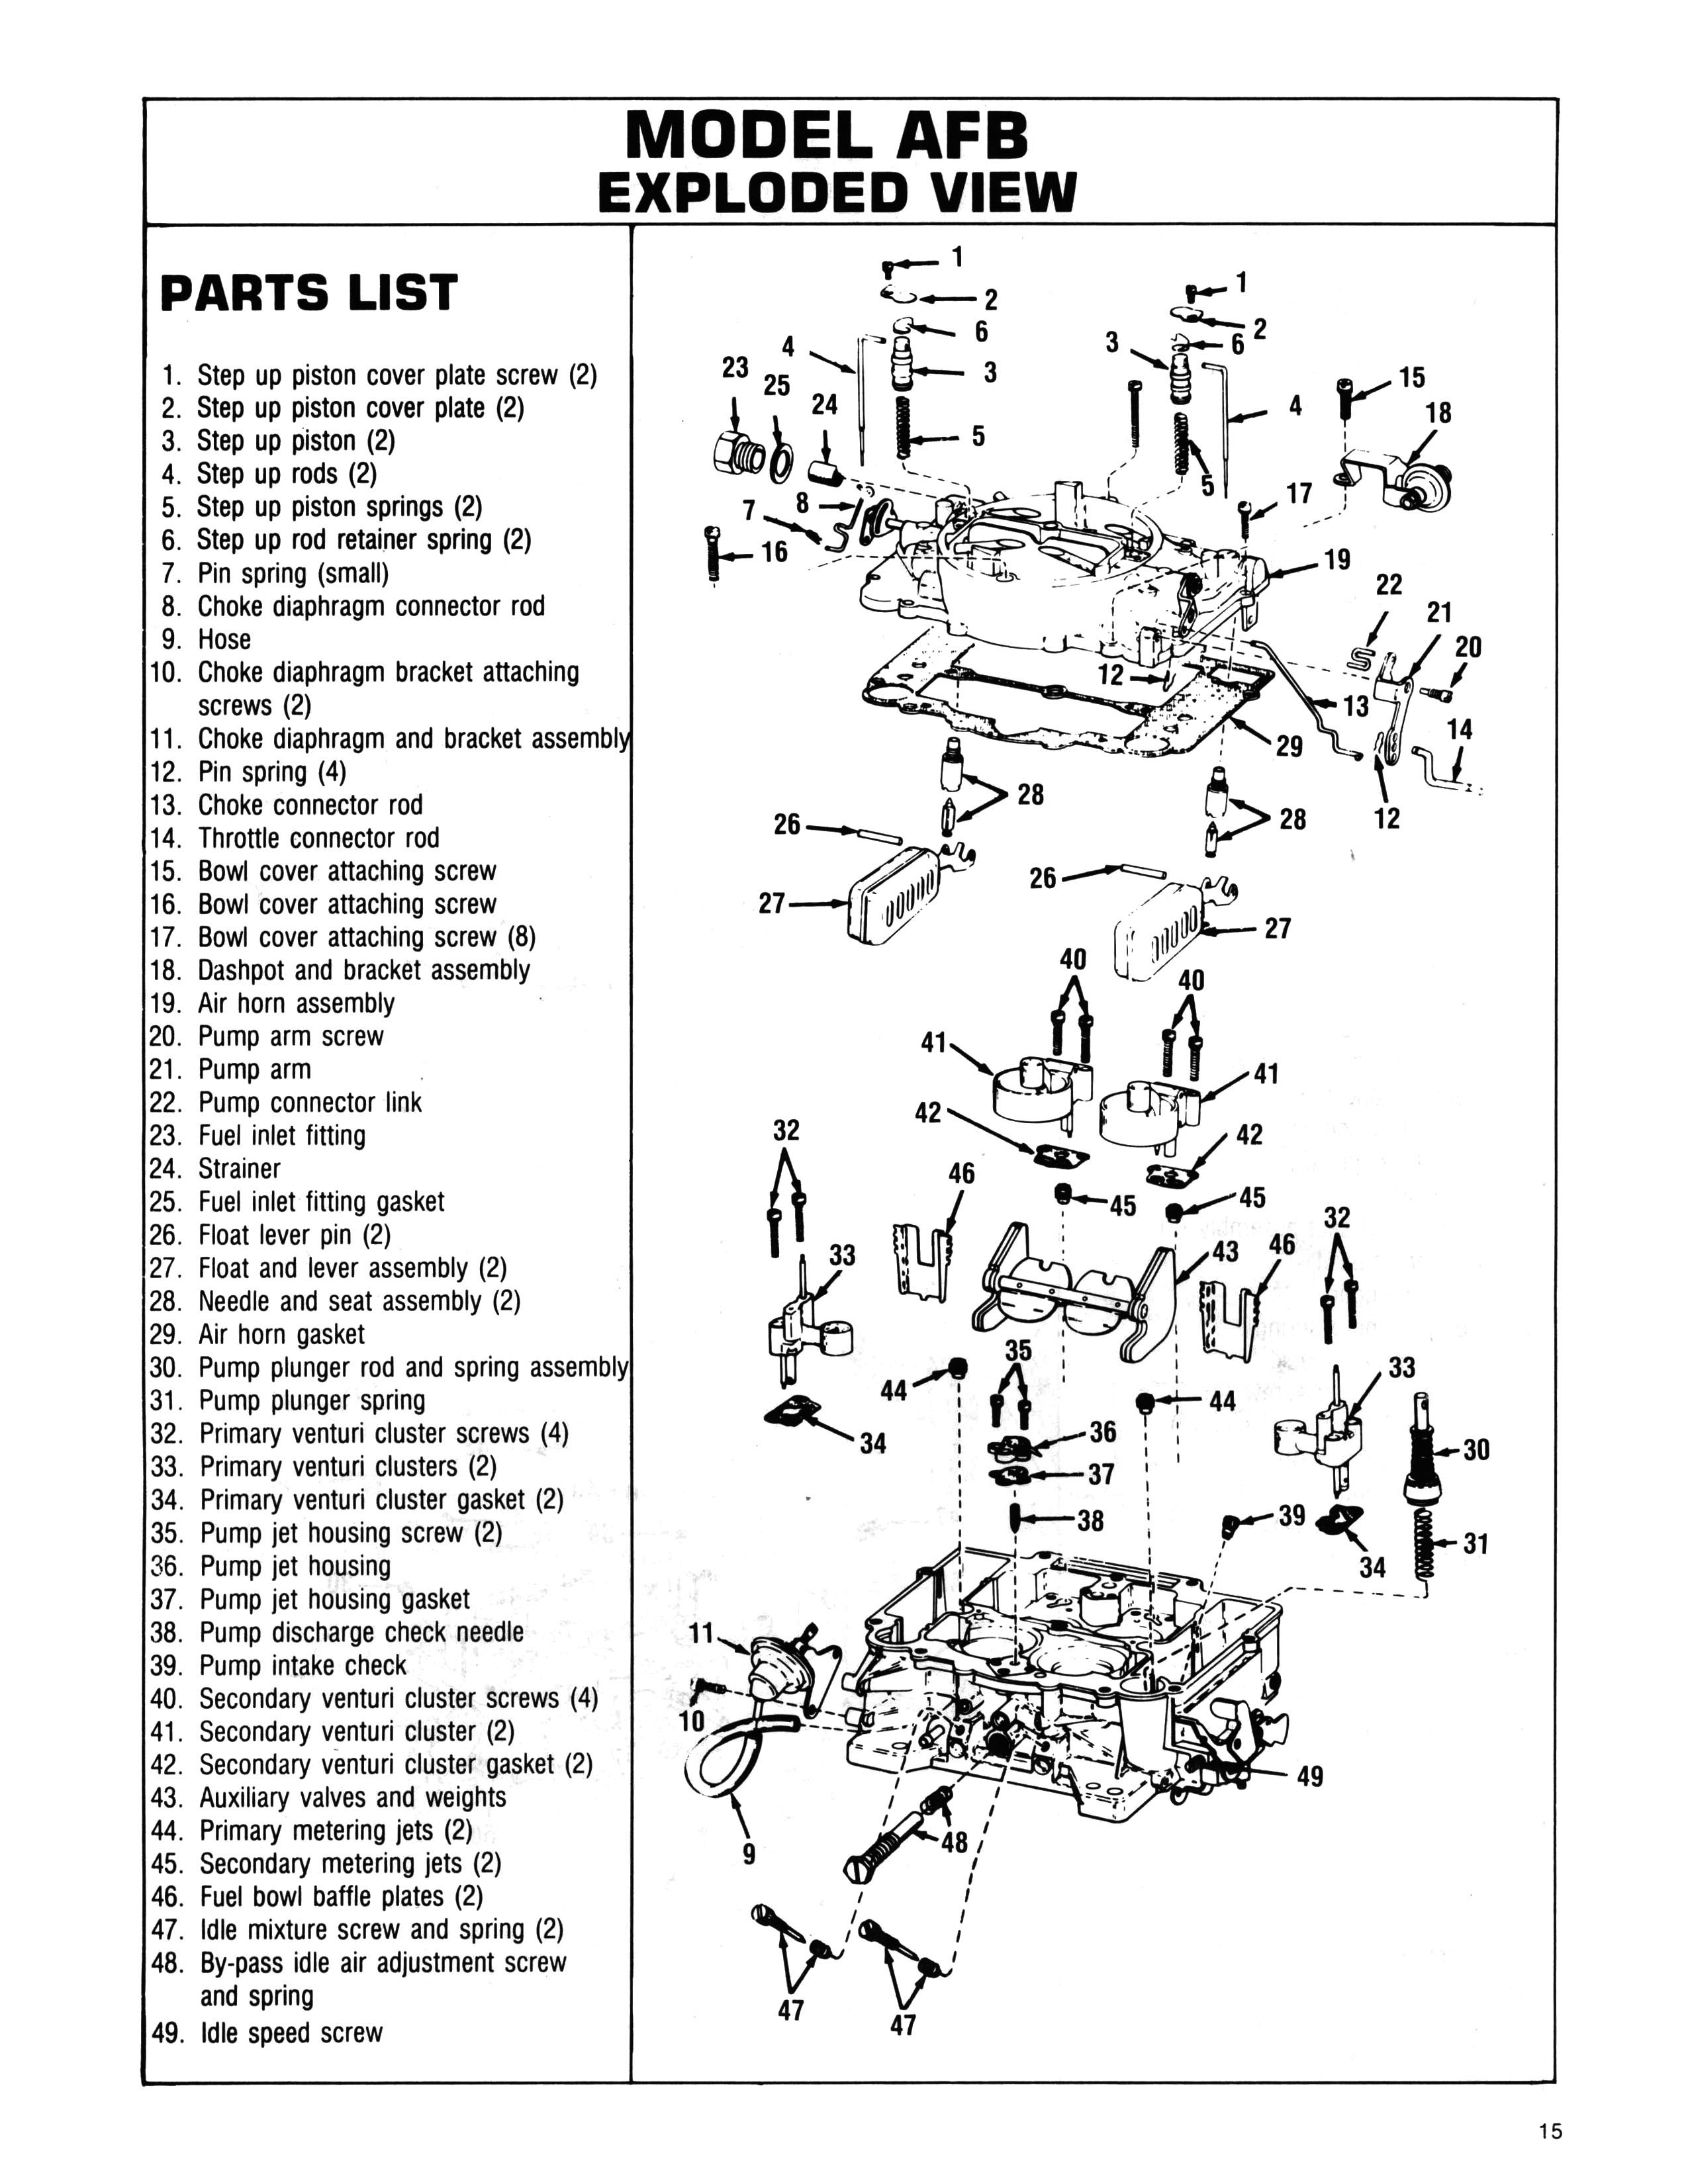 carter carburetor parts diagram custom wiring diagram u2022 rh littlewaves co